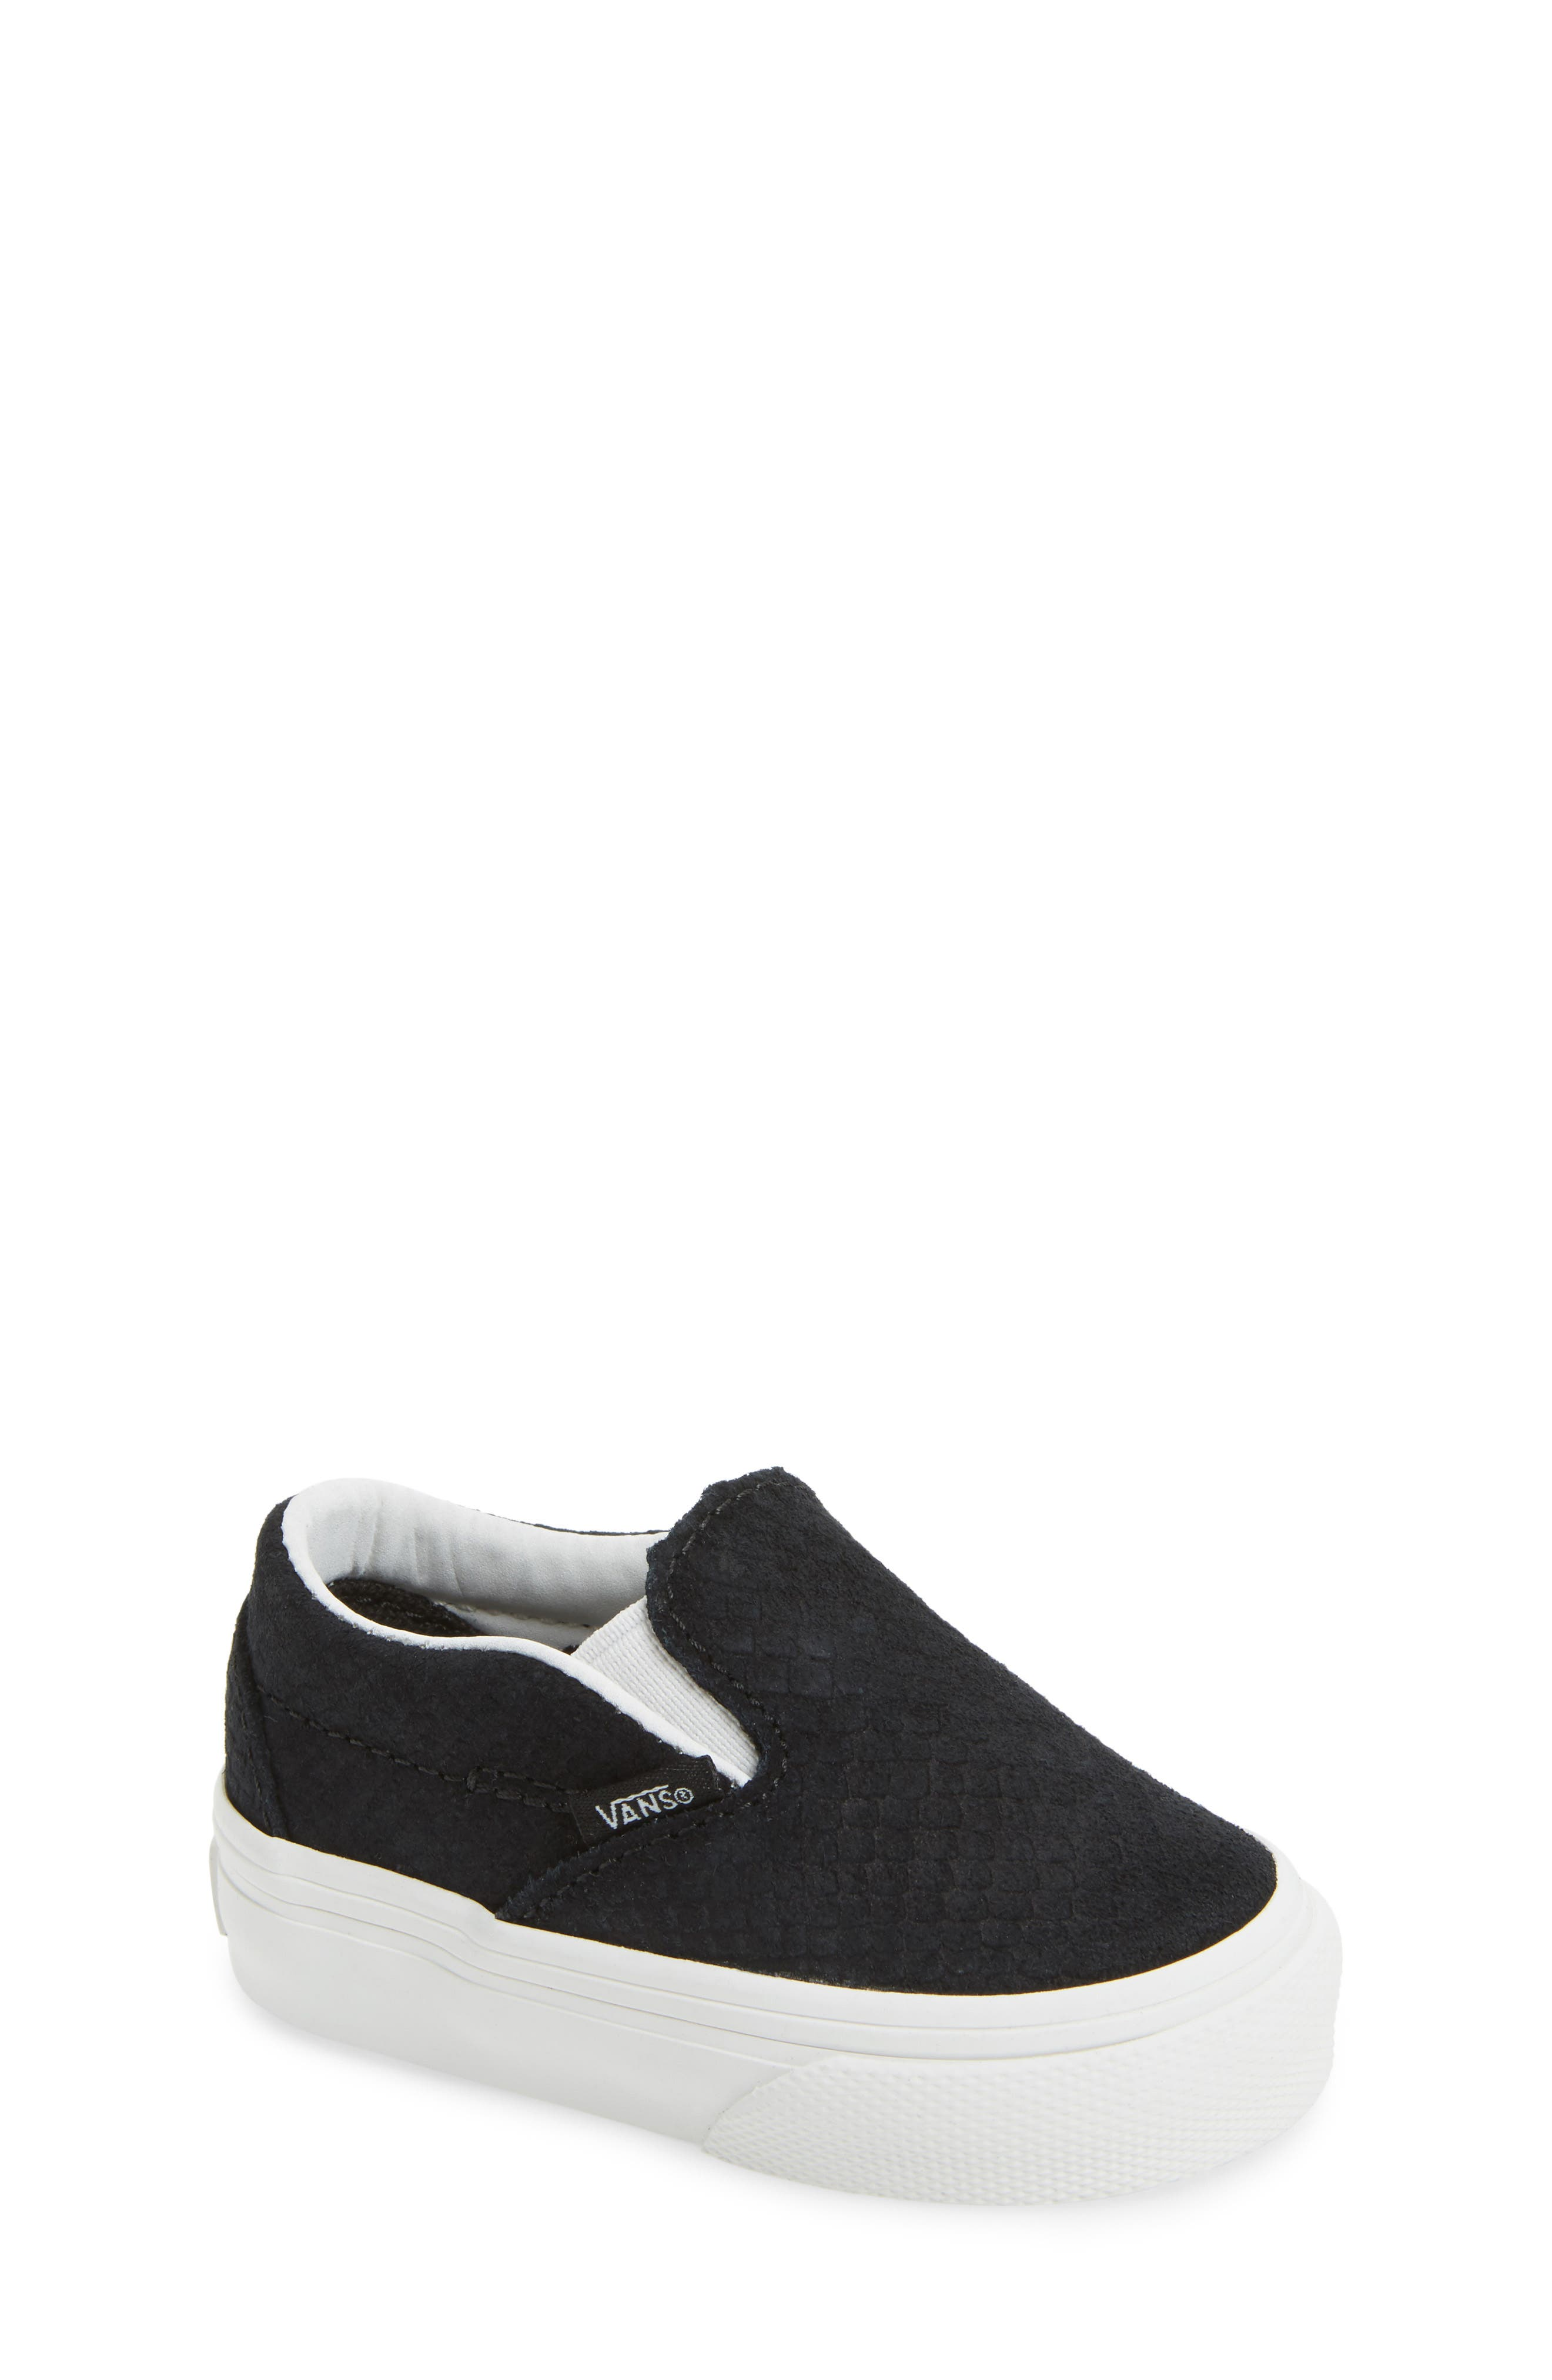 Vans Classic Slip-On Sneaker (Baby, Walker & Toddler)